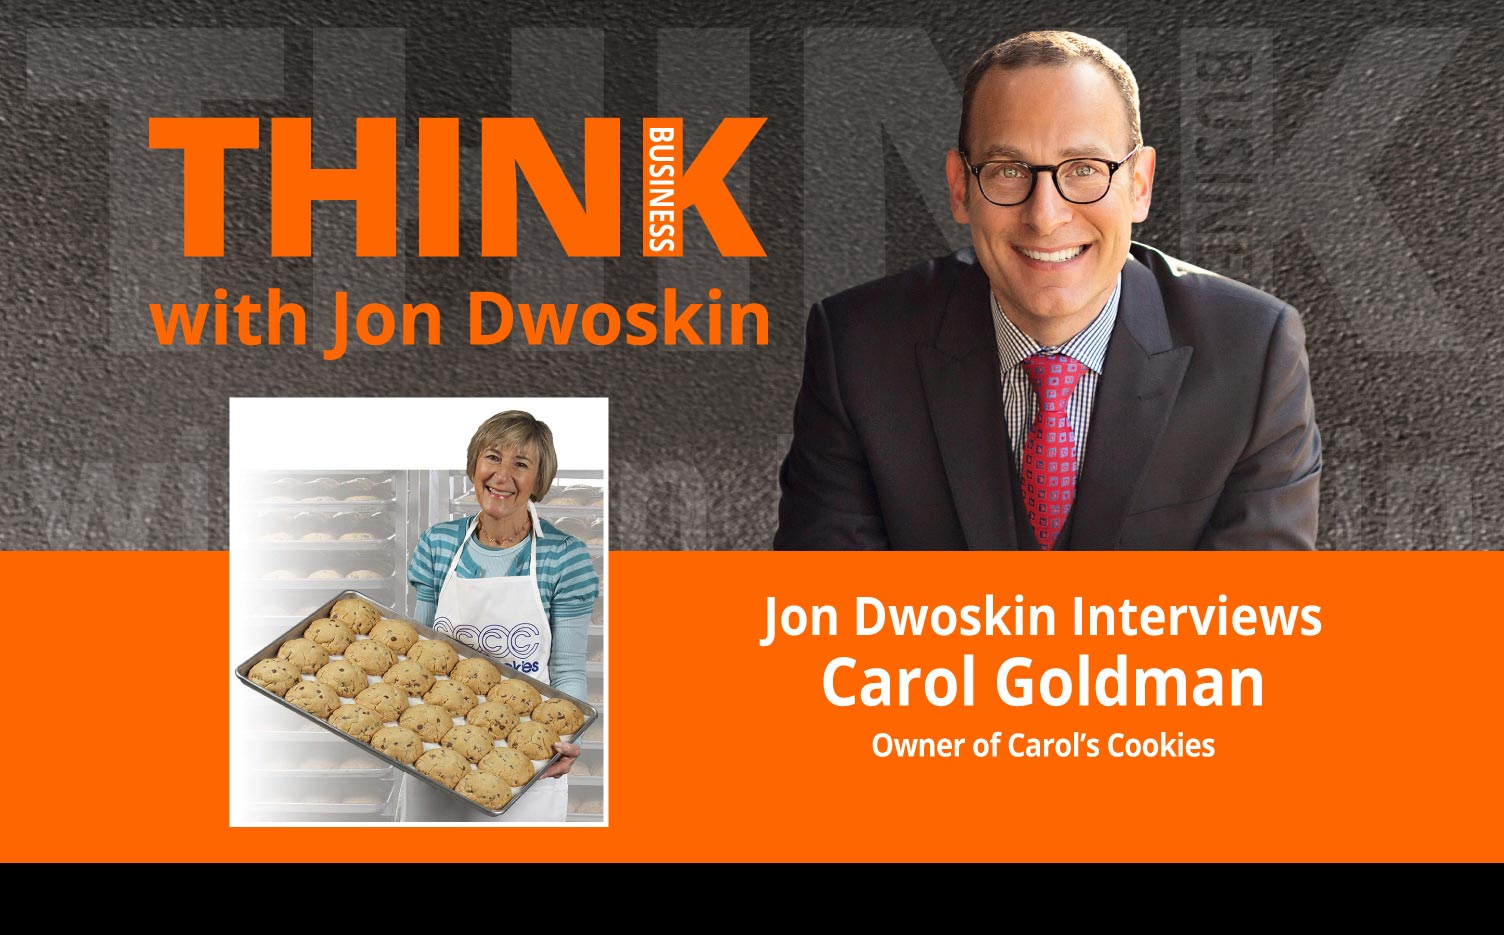 THINK Business-Podcast-Jon Dwoskin Interviews Carol Goldman